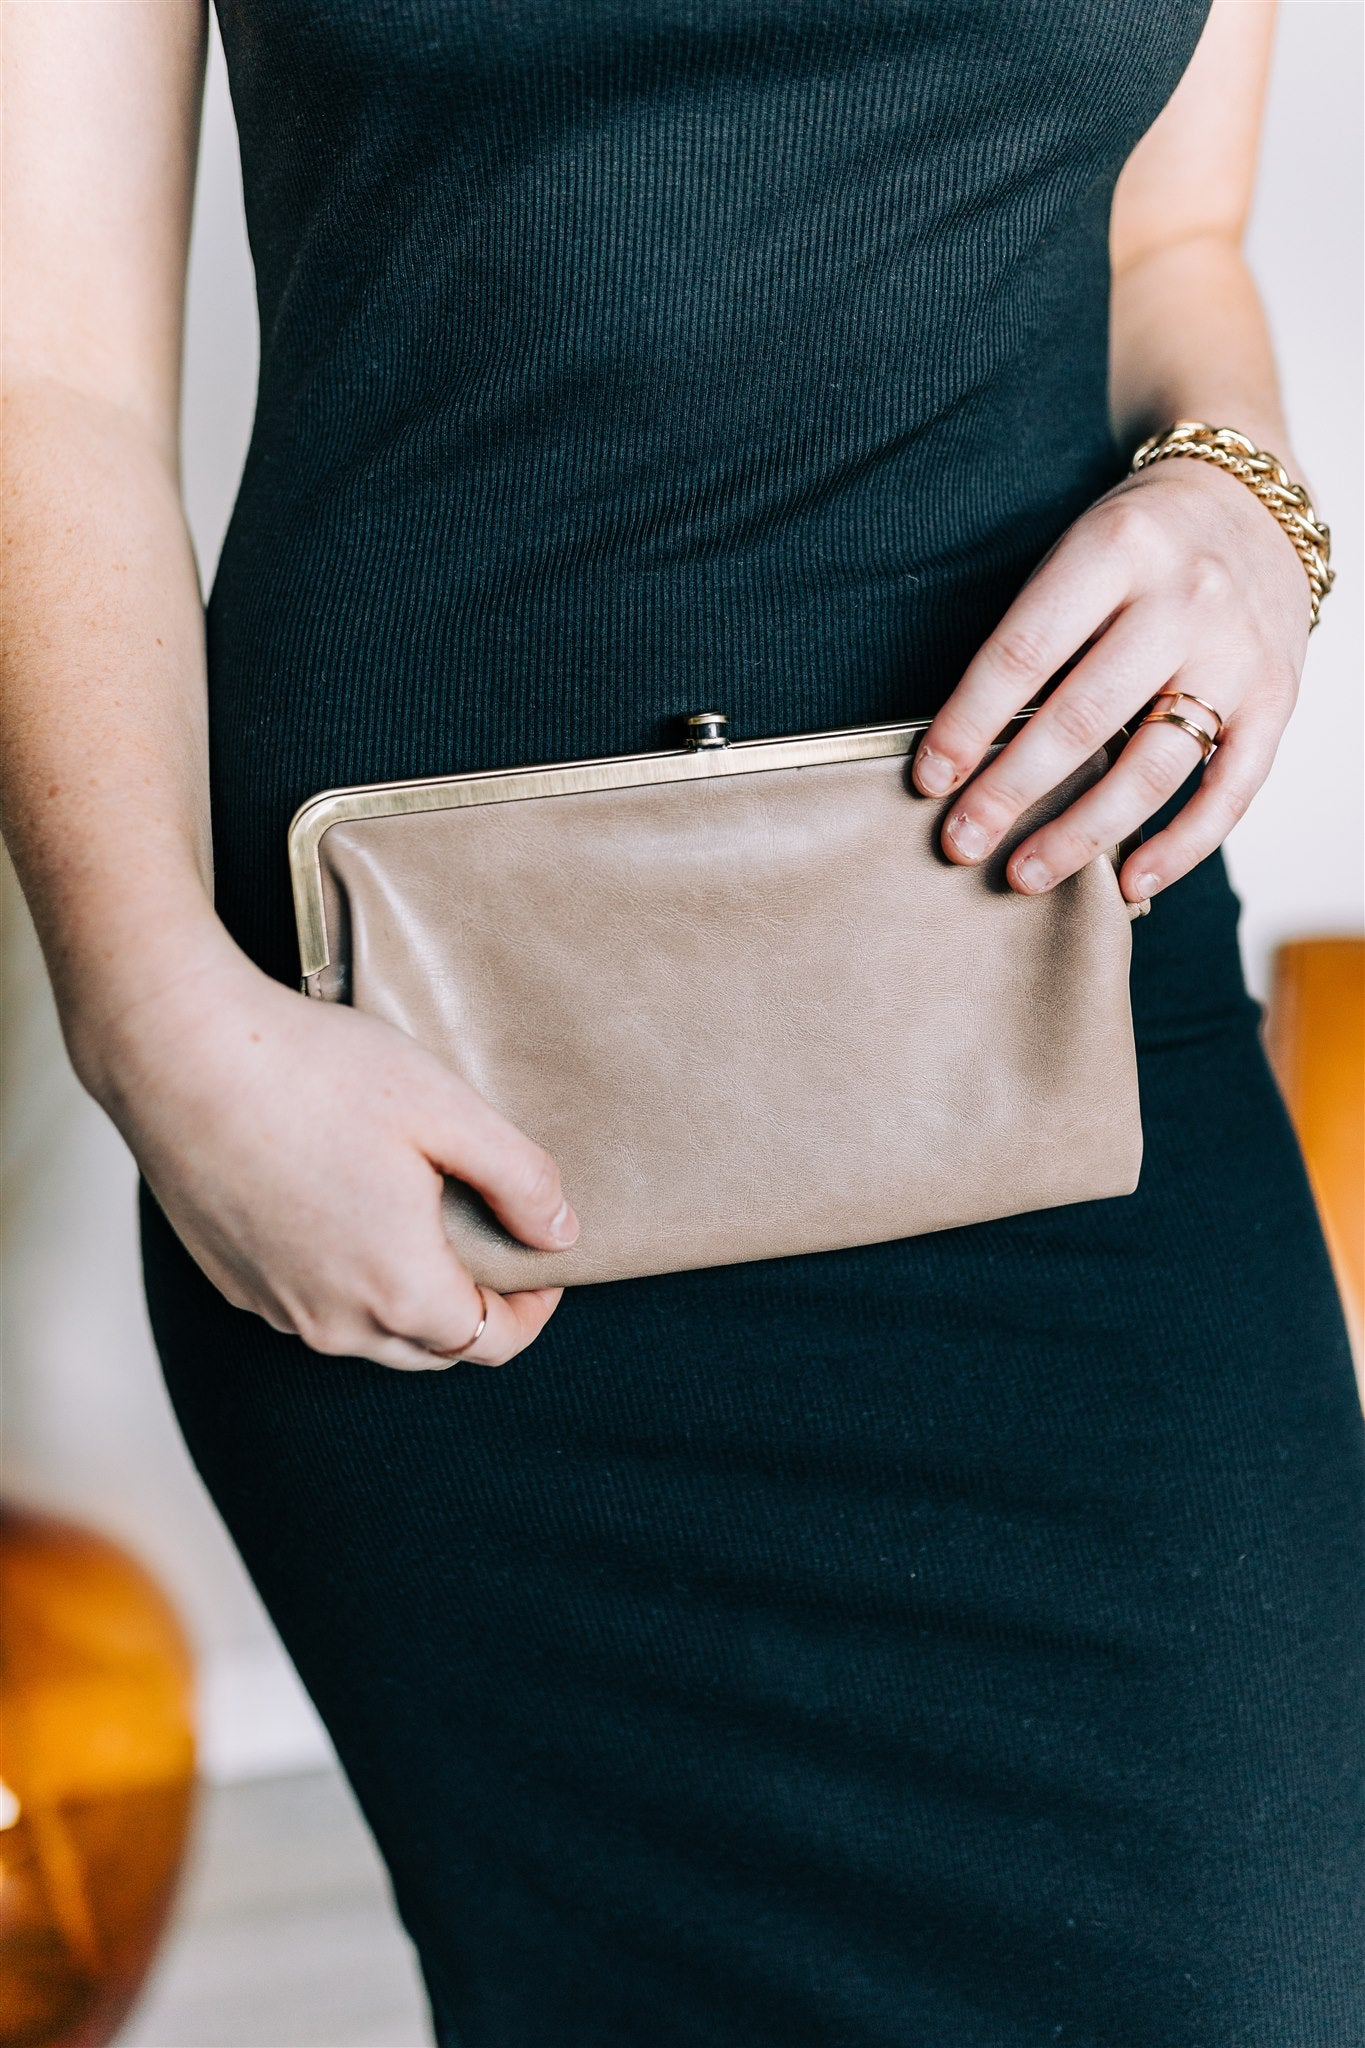 Old Fashioned Wallet - Nude